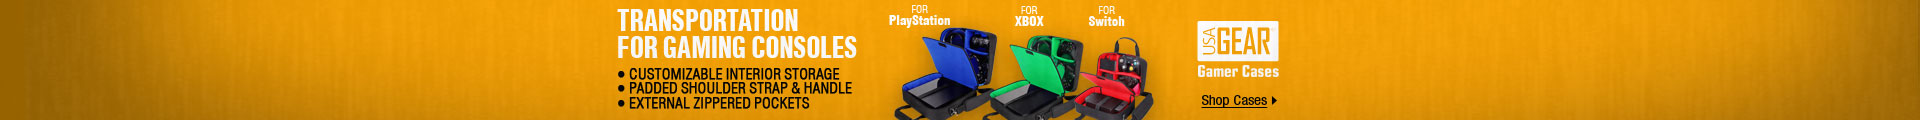 TRANSPORATION FOR GAMING CONSOLES